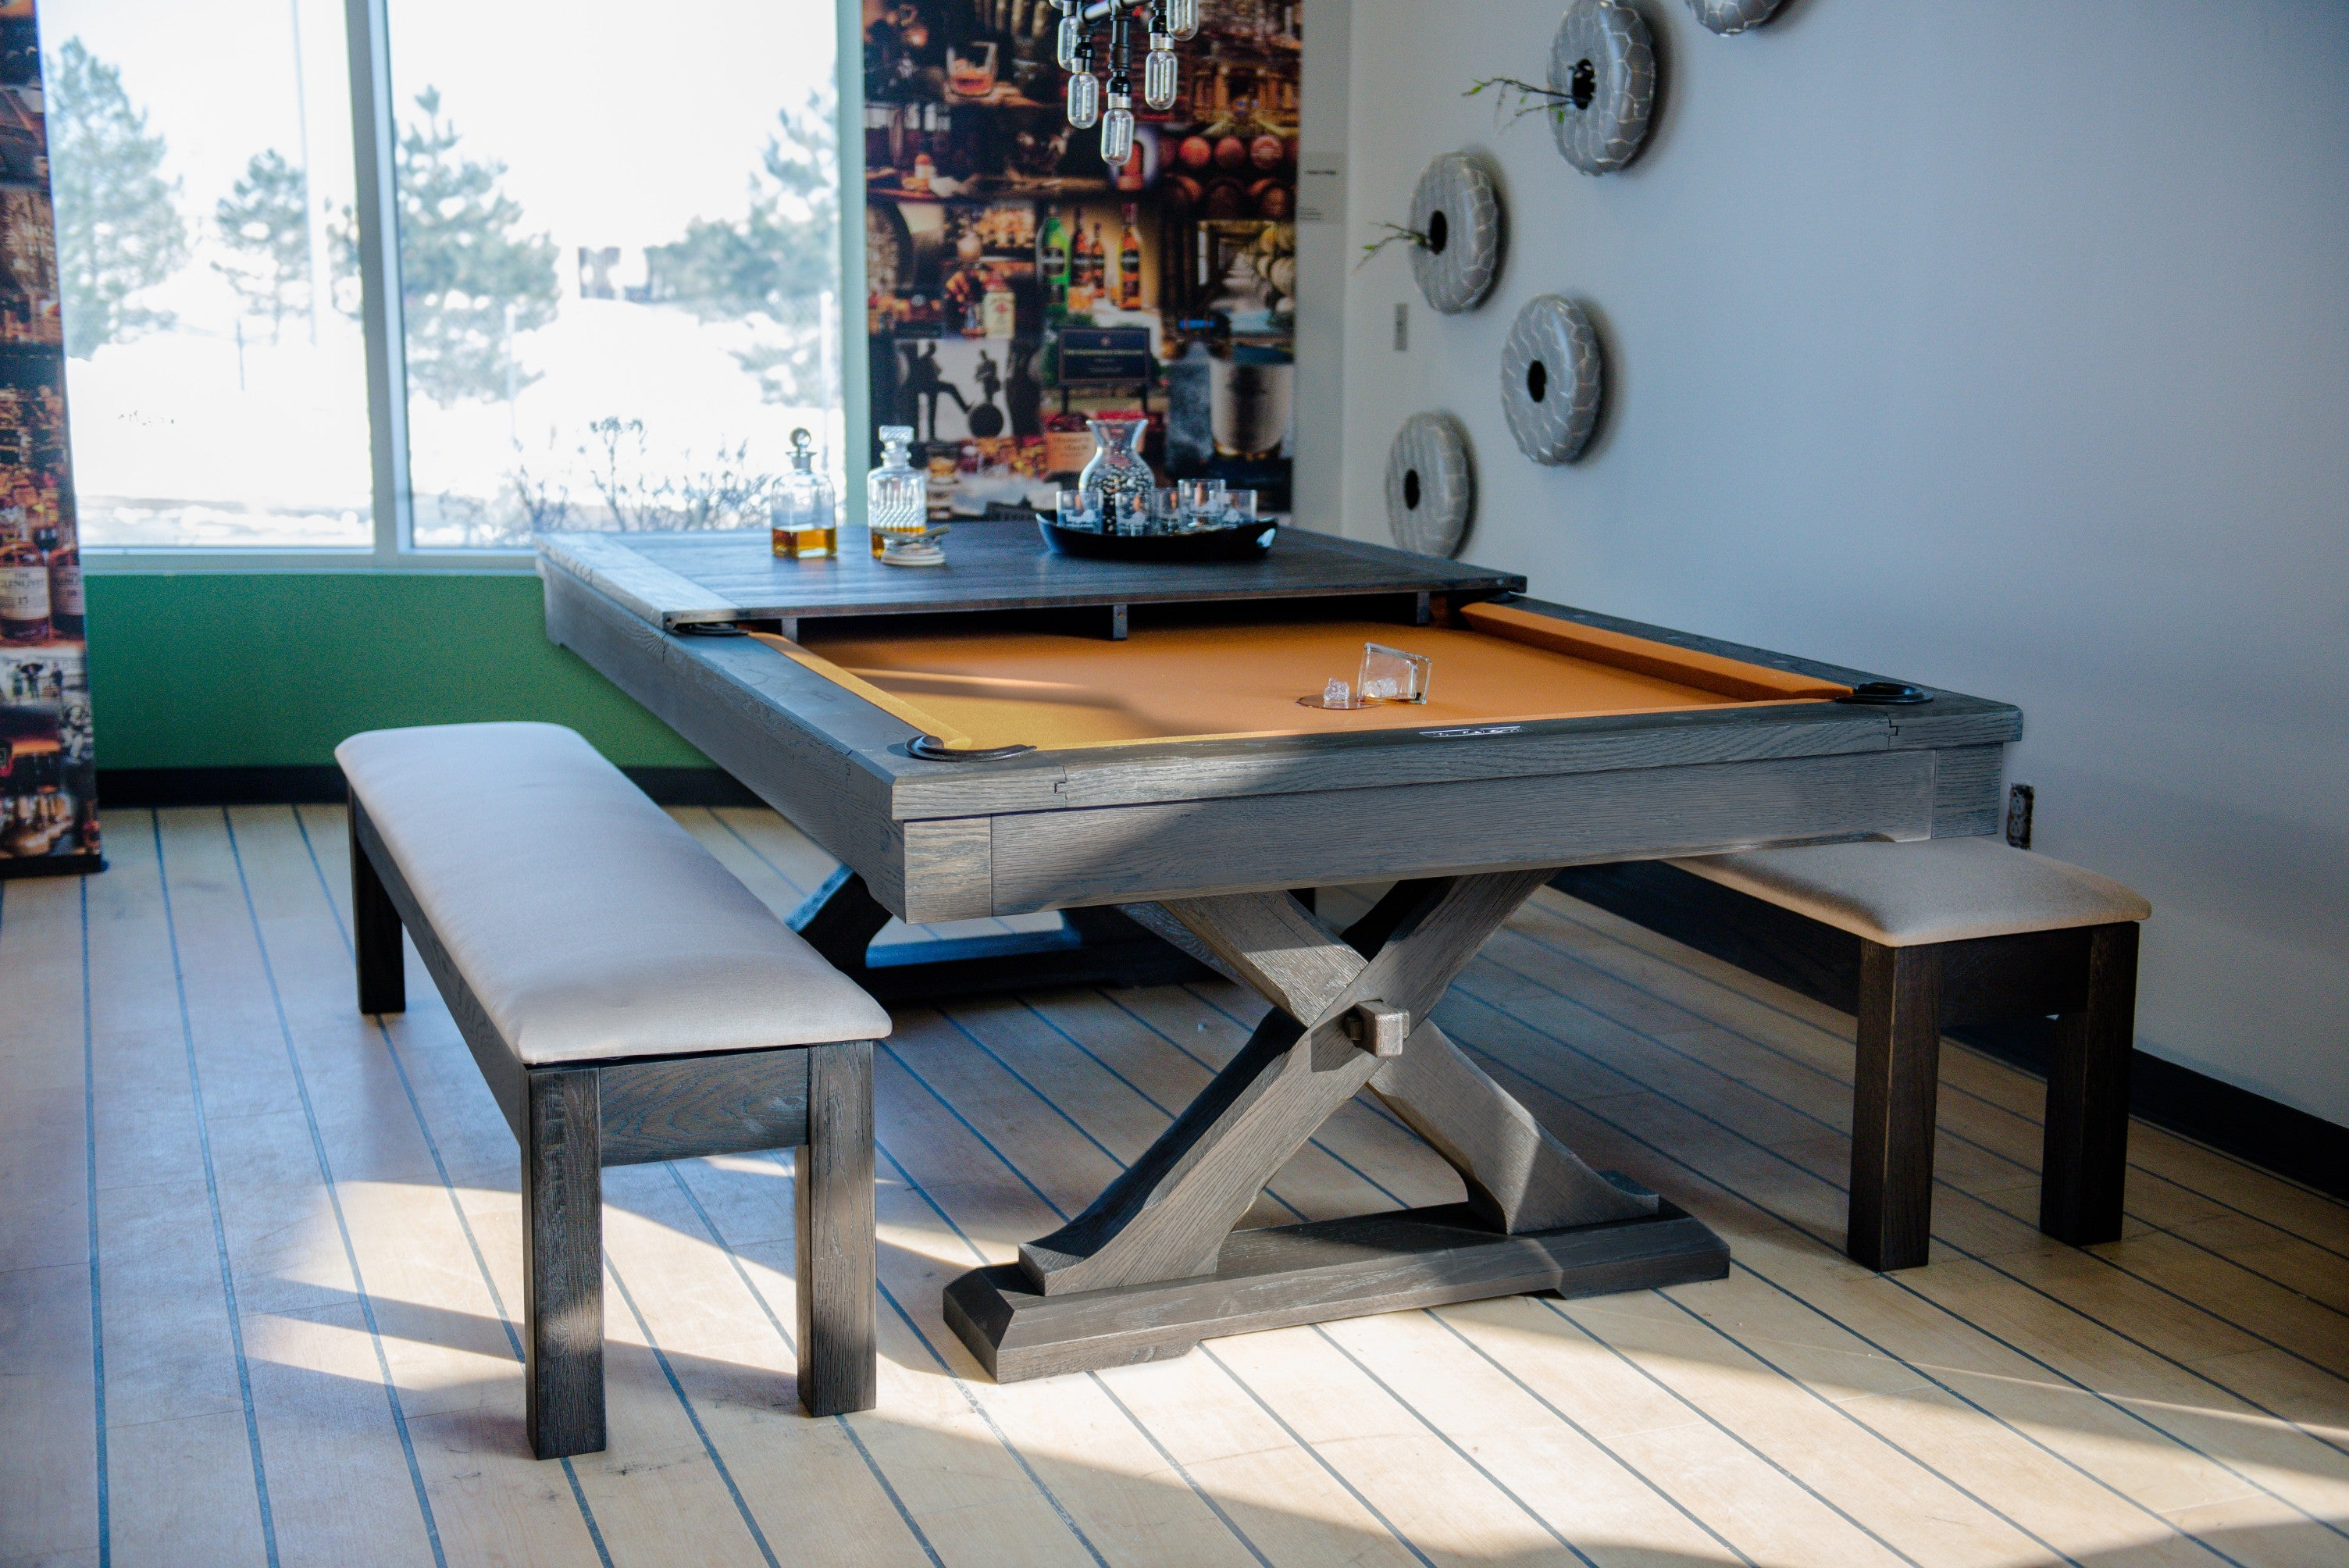 Karibou Pool Table